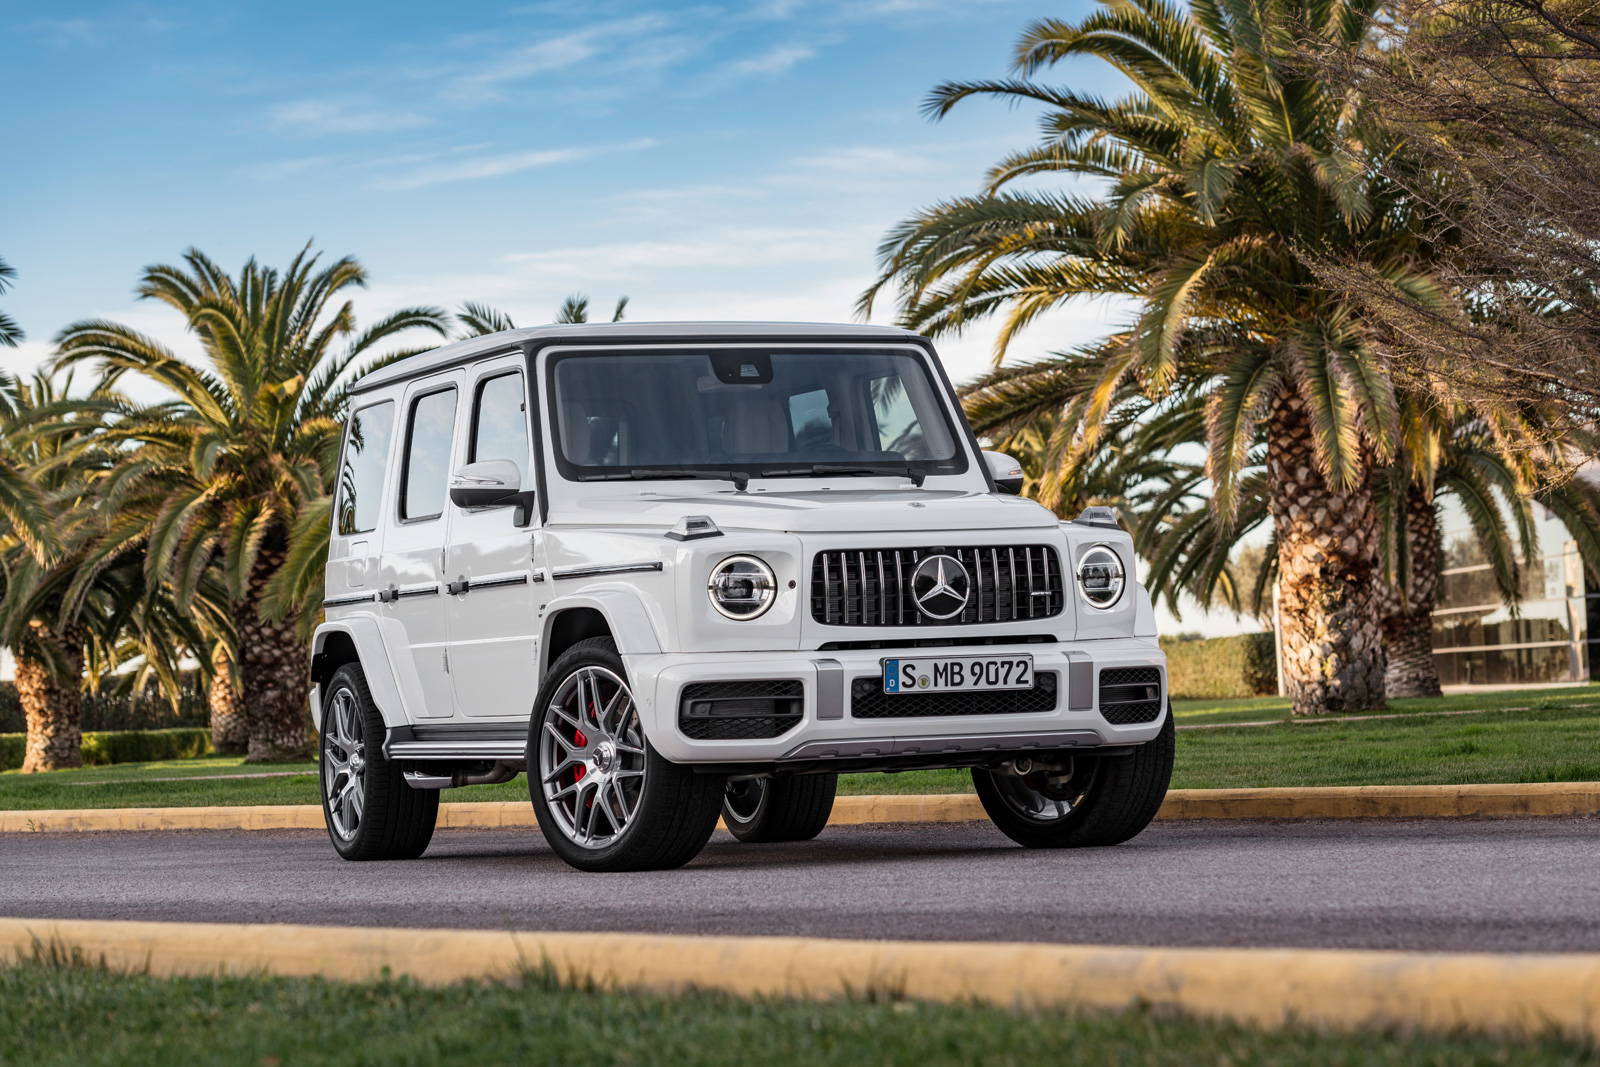 Mercedes Luxury Suv >> 2019 Mercedes-AMG G63 Goes Off-Roading with 577 HP » AutoGuide.com News